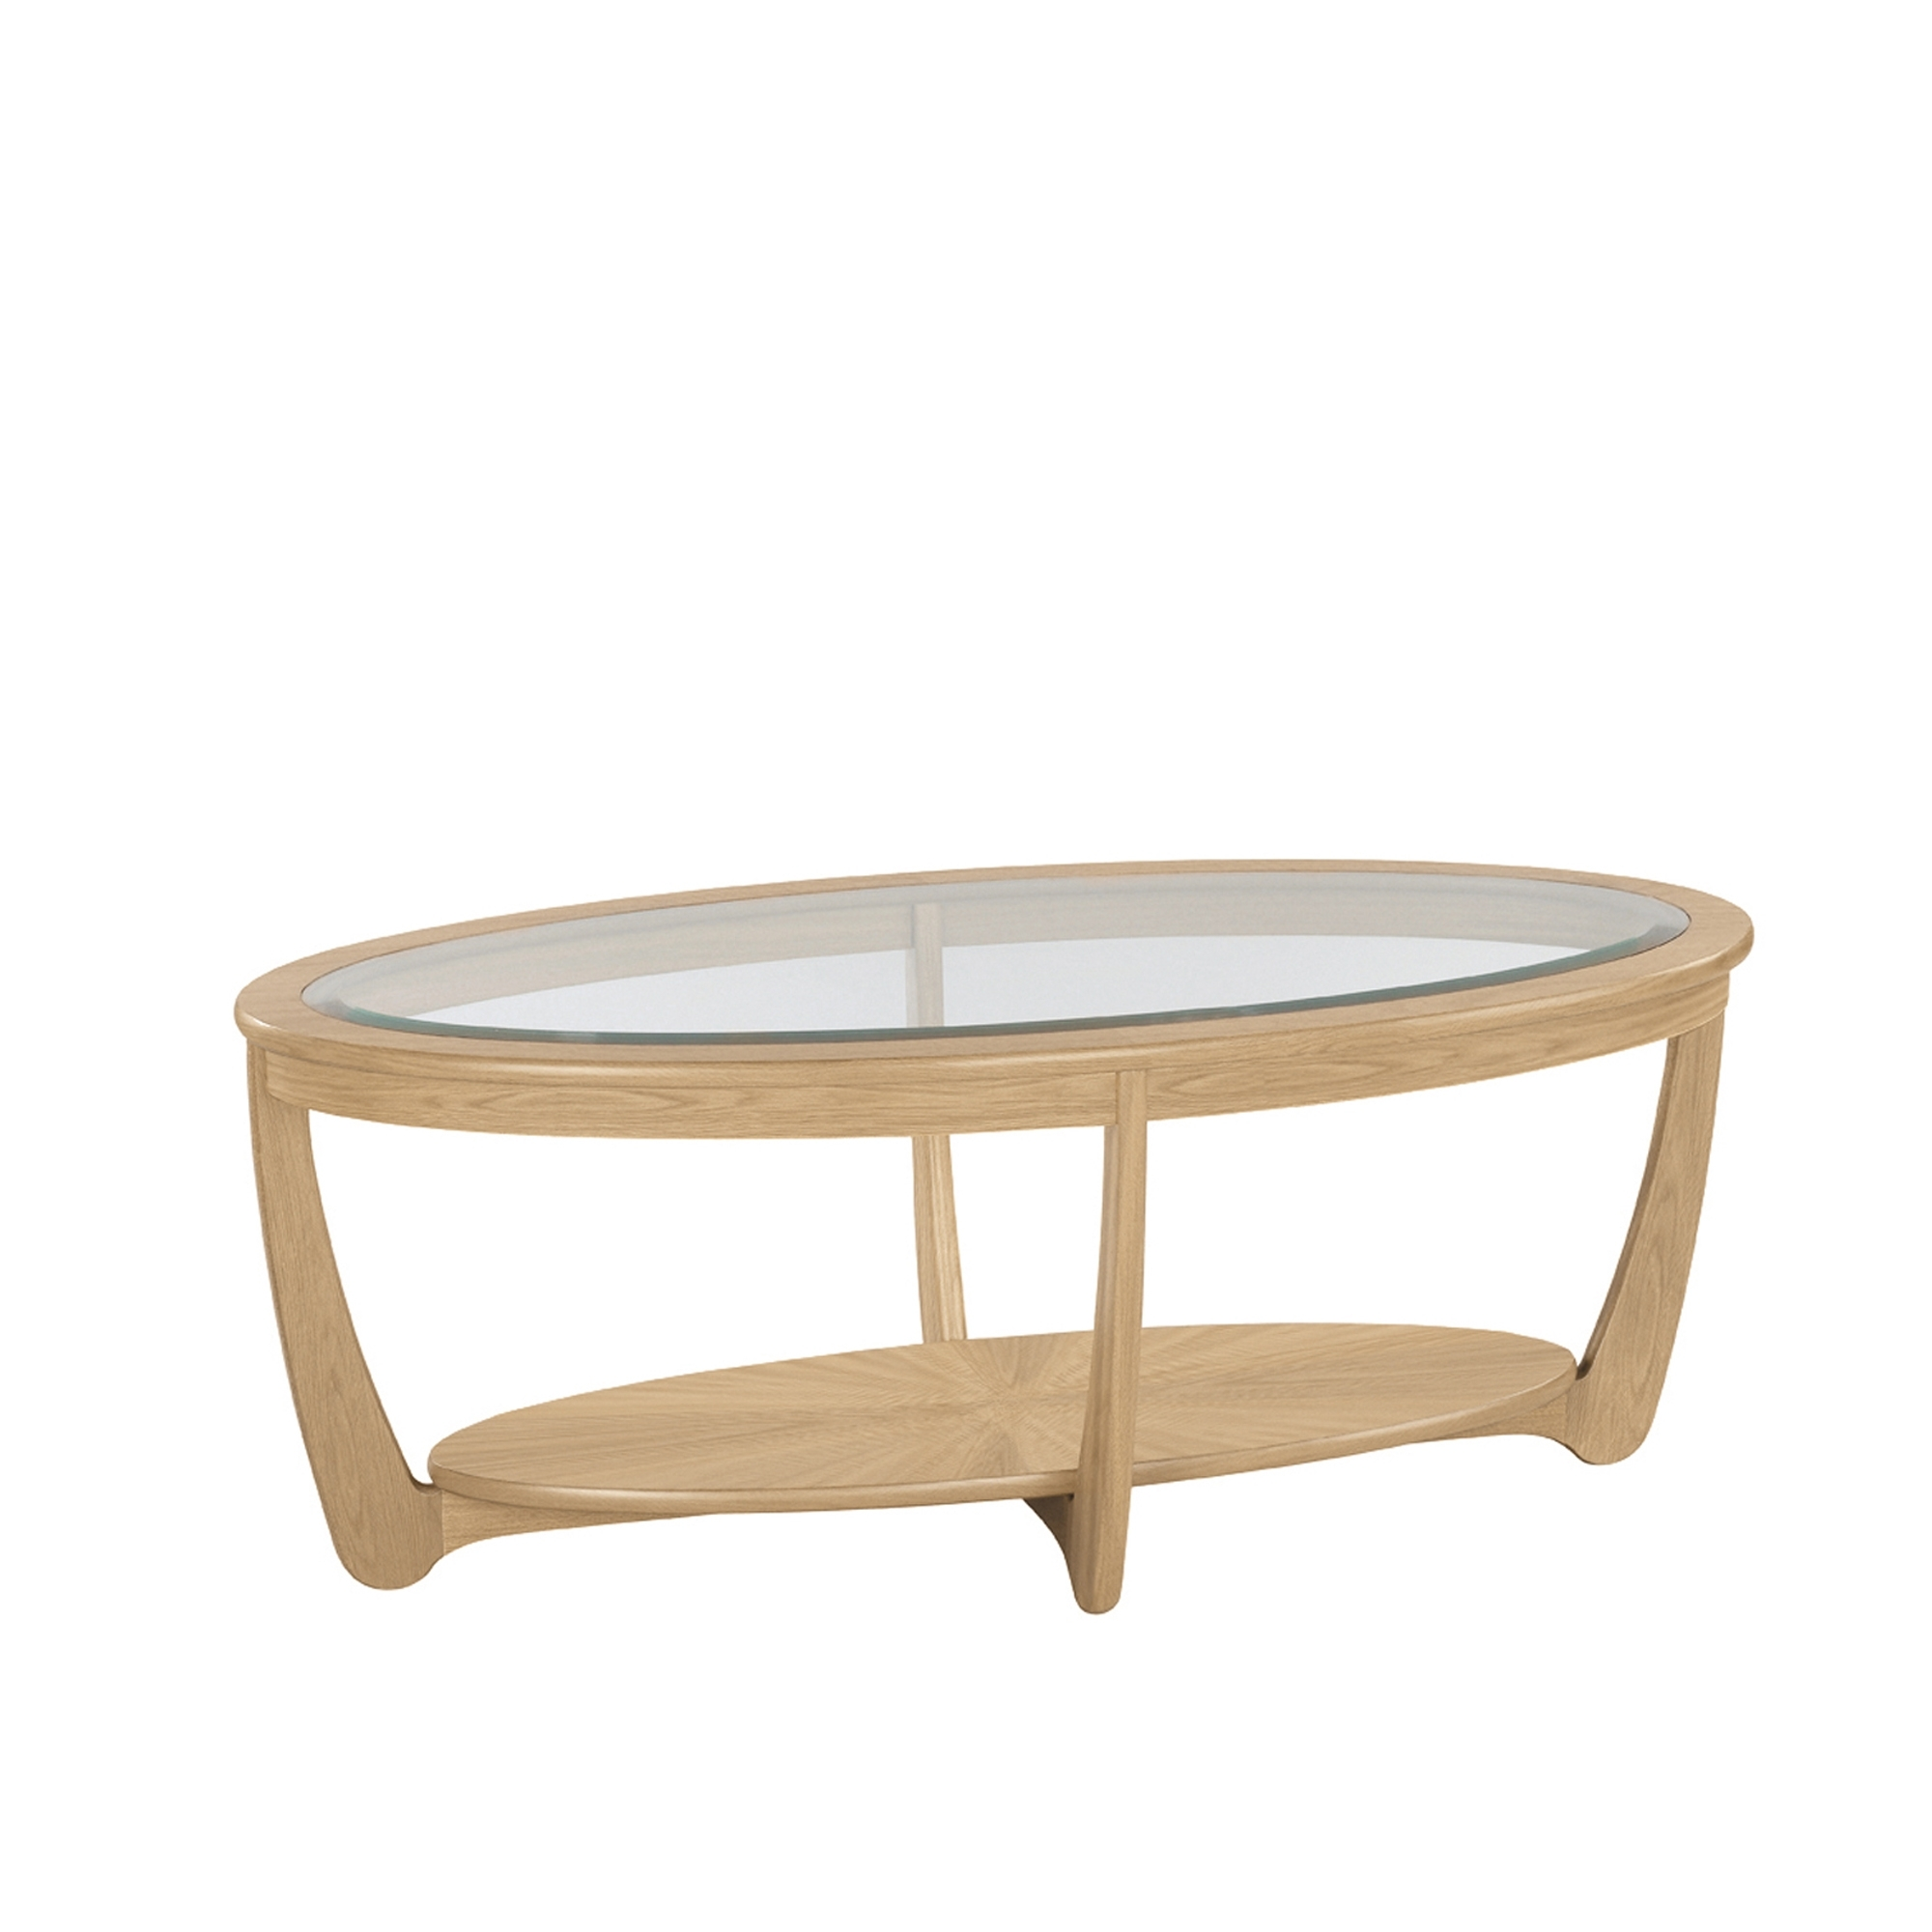 Nathan shades oak glass top oval coffee table coffee tables cookes furniture Glass oval coffee tables